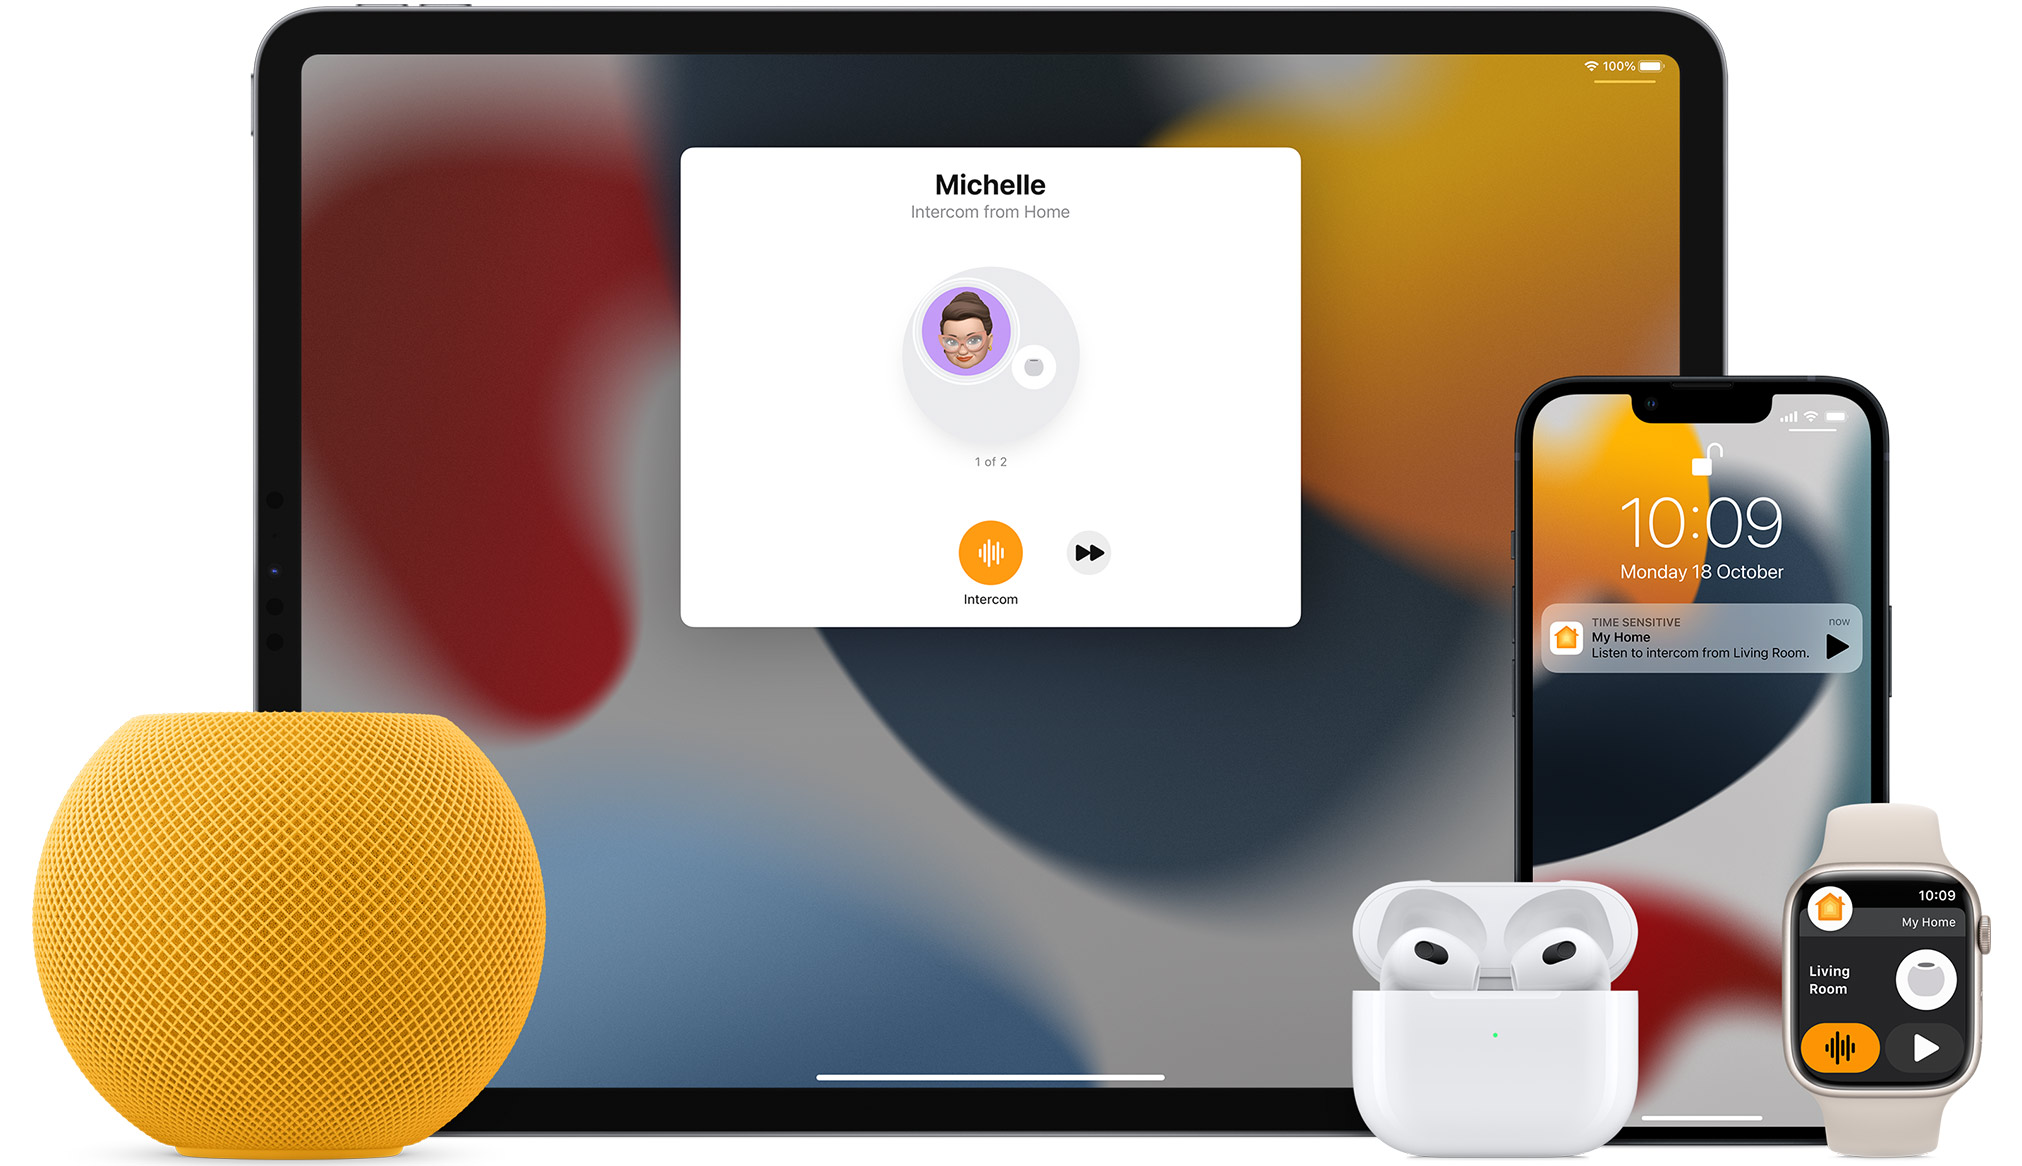 White HomePod mini, an iPad, AirPods in a case, an iPhone and an Apple Watch with a pink band are arranged.